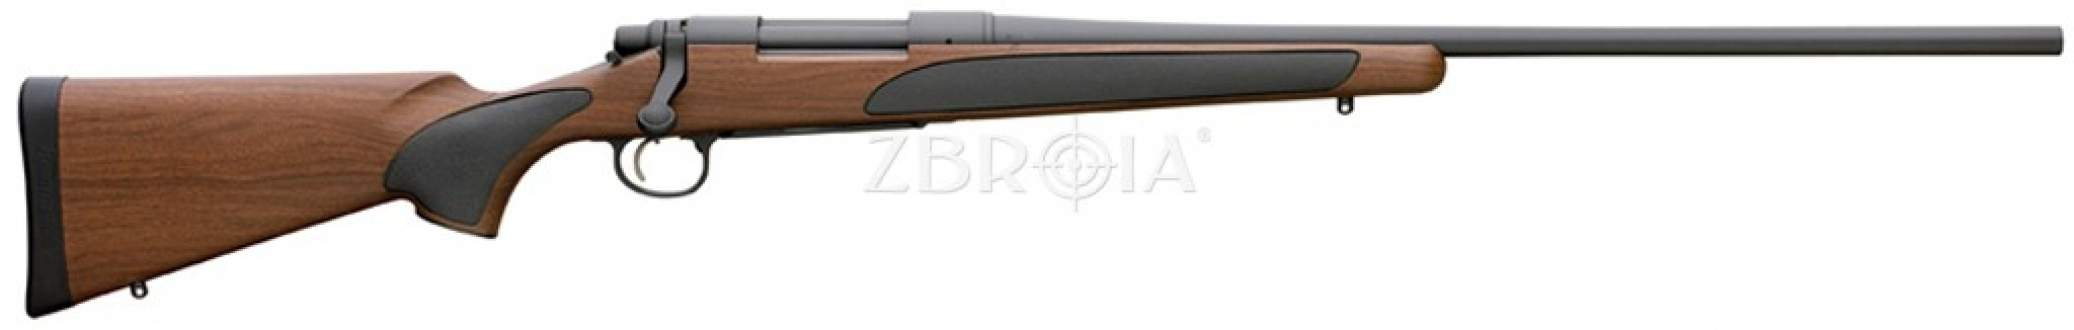 Карабин Remington 700 SPS Wood Tech кал. 30-06